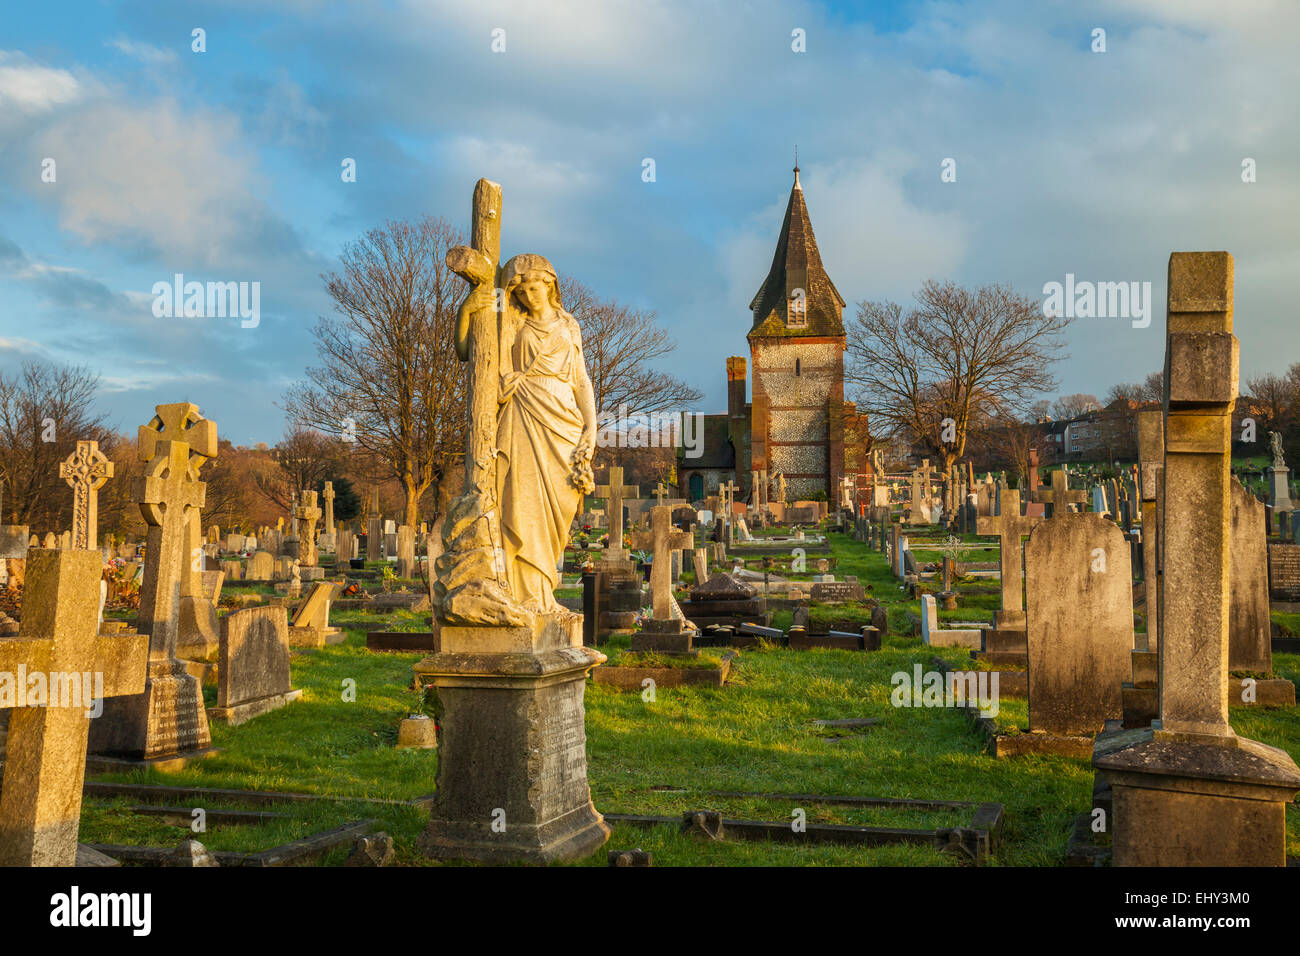 Winter sunset at an old cemetery in Brighton, East Sussex, England. Stock Photo